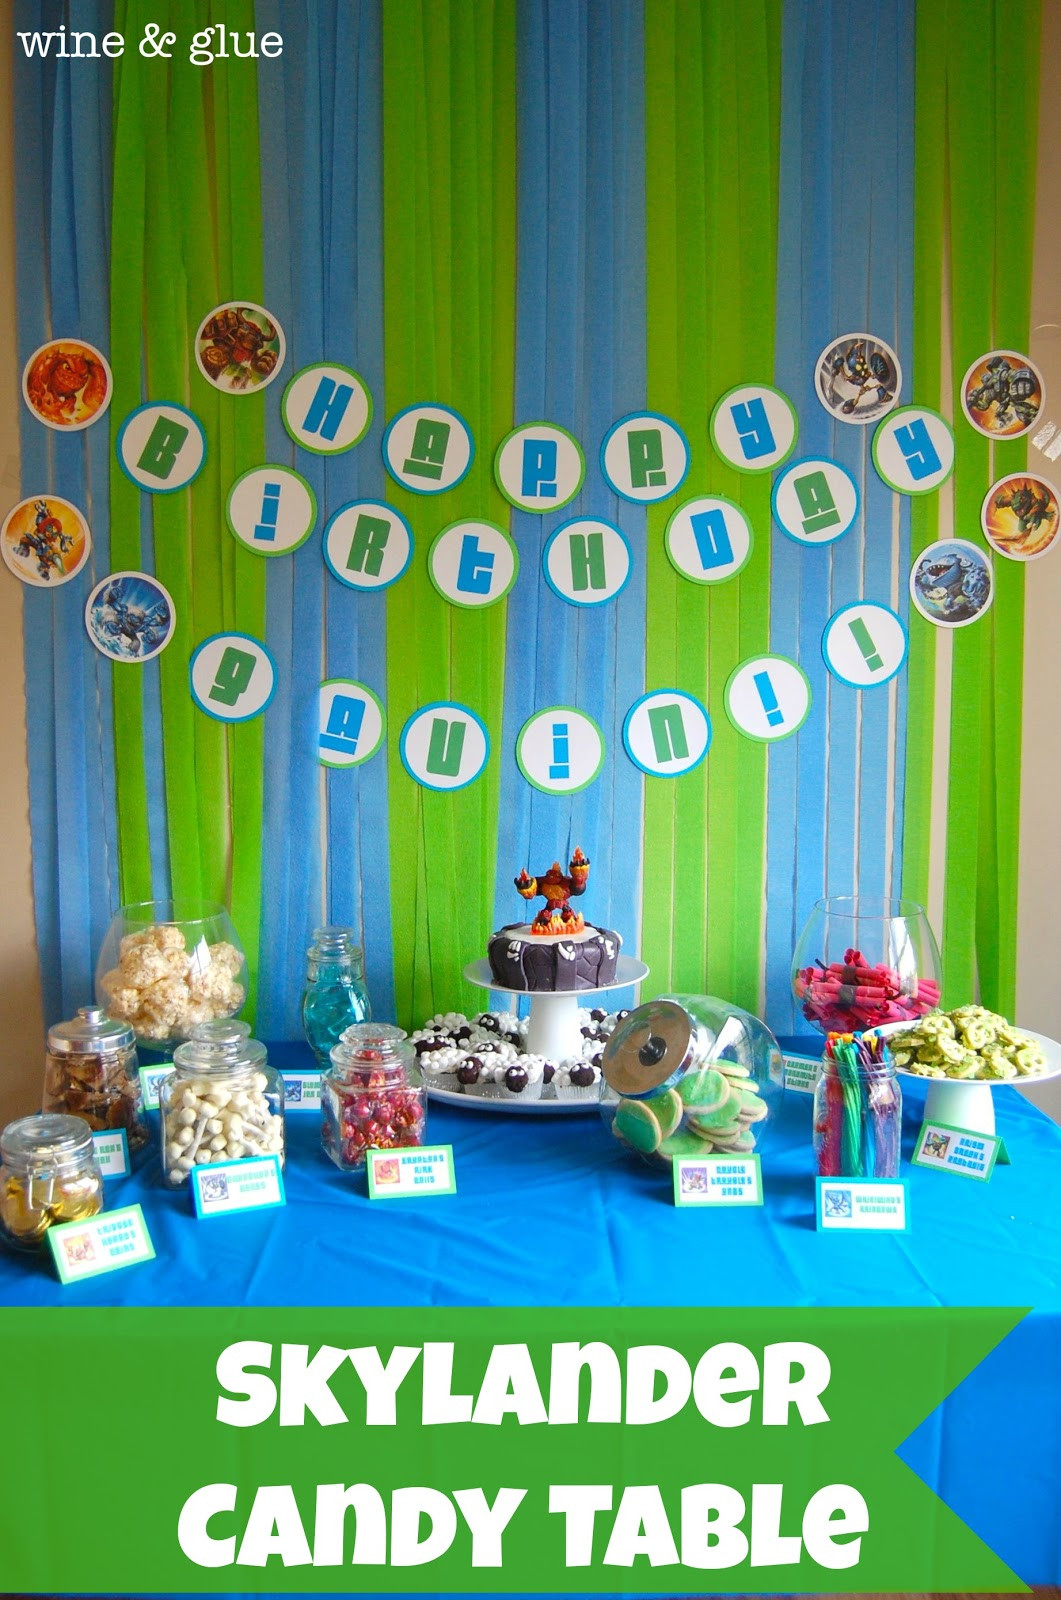 Best ideas about Skylanders Birthday Party . Save or Pin Skylander Party Candy Table Wine & Glue Now.